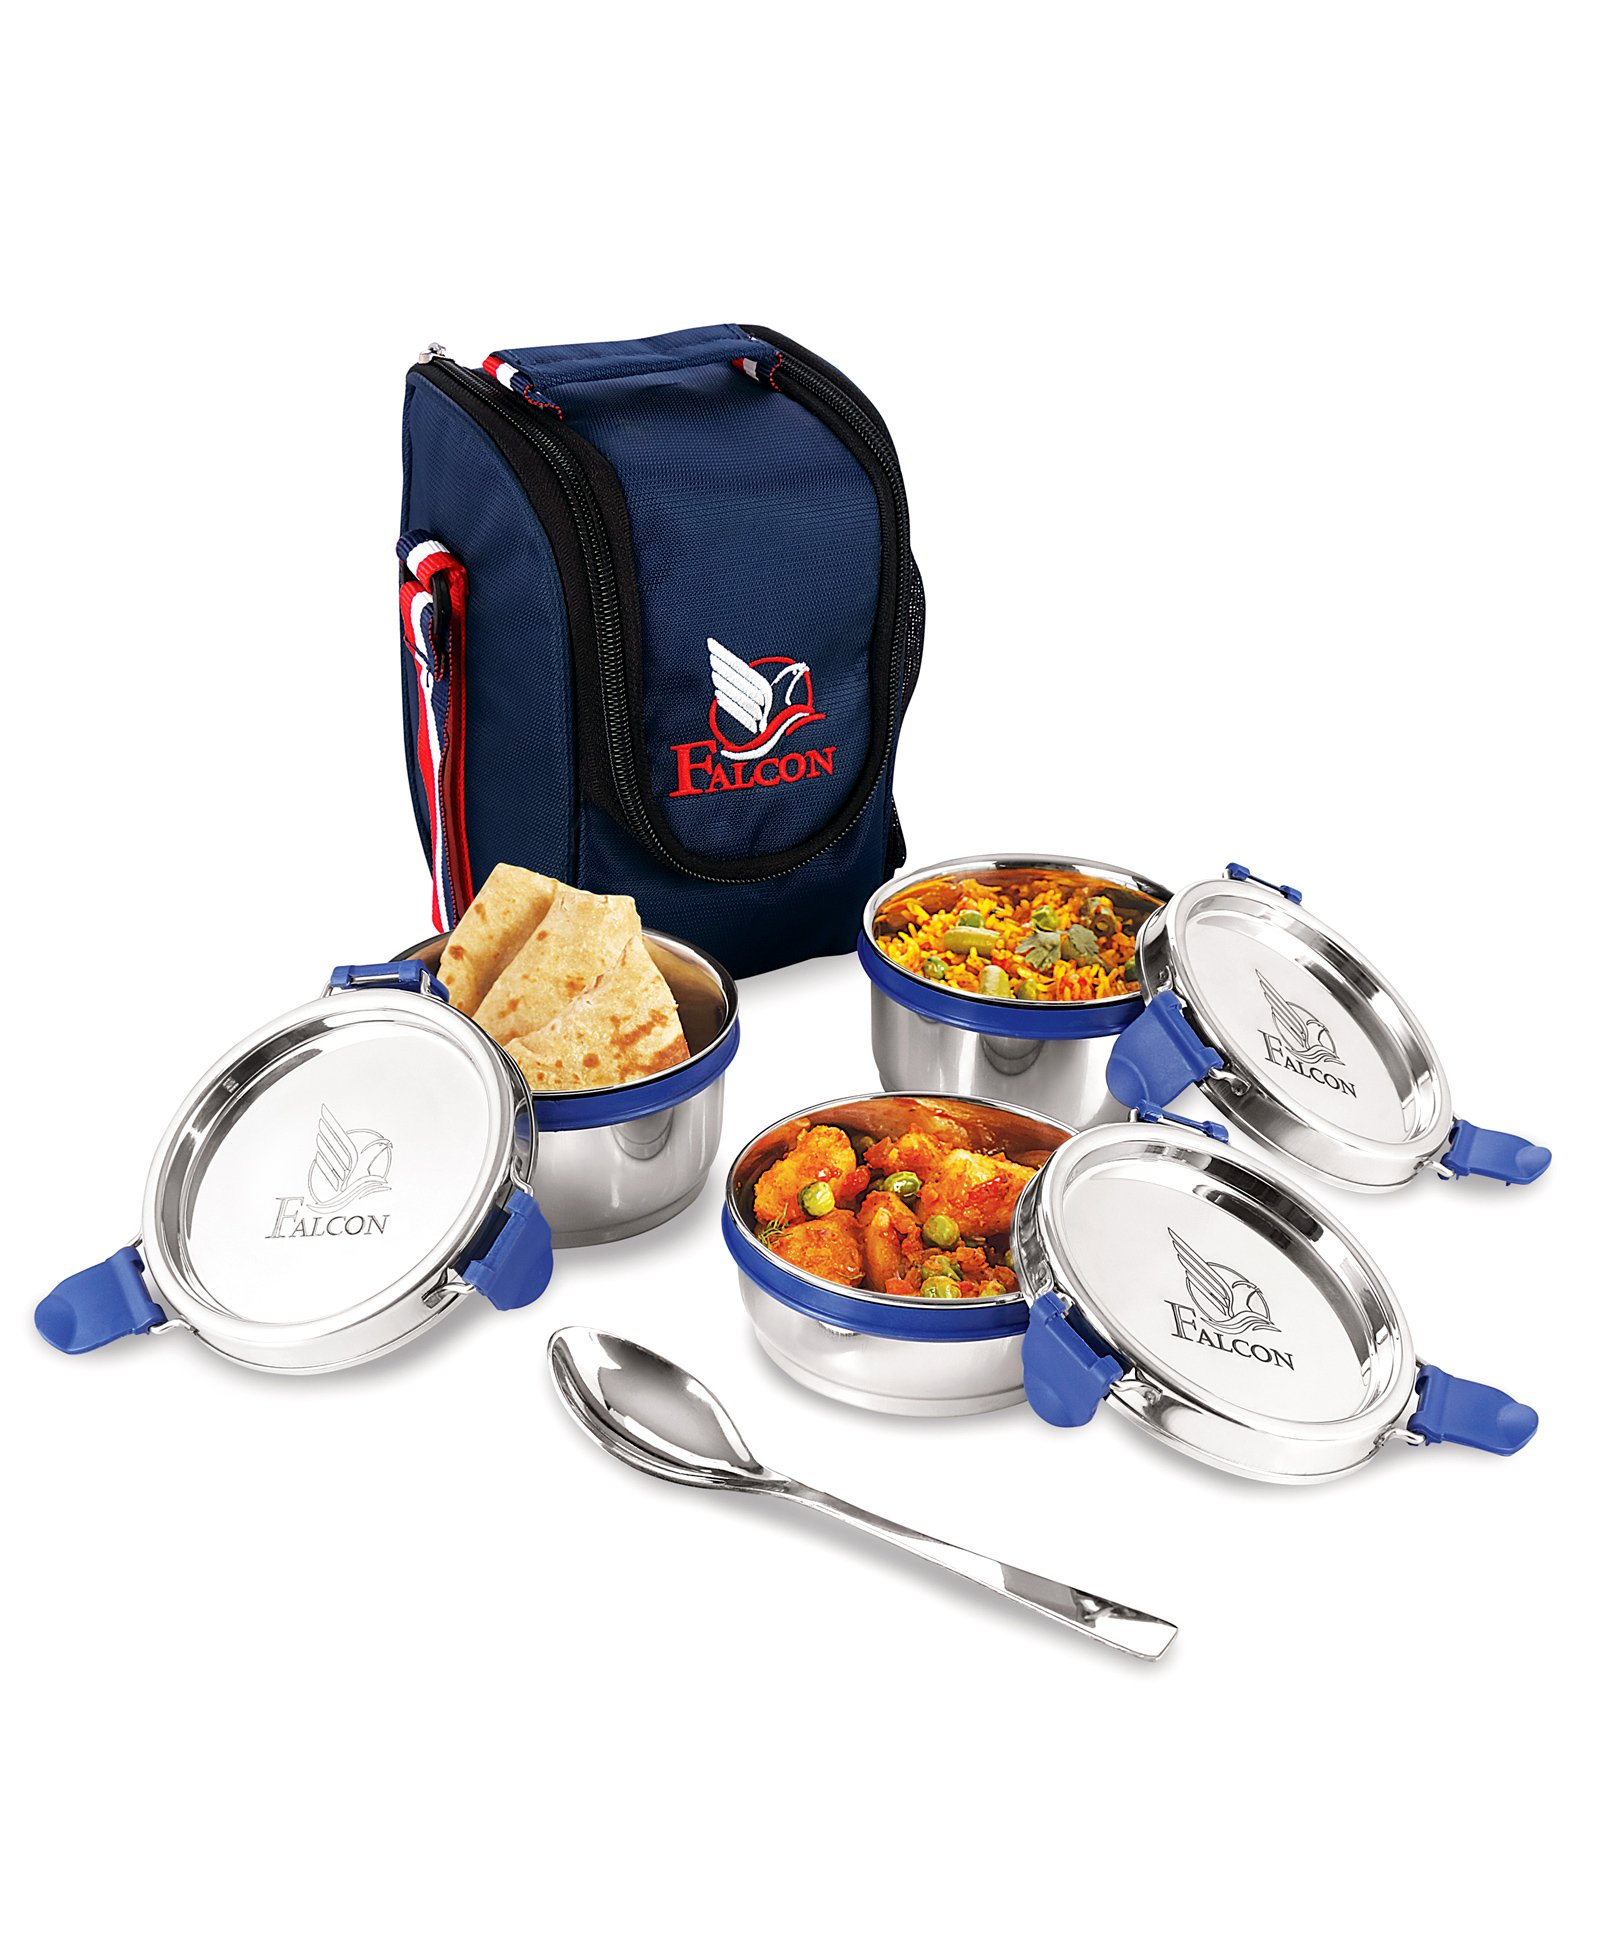 Falcon Eco Nxt Stainless Steel Lunch Box Set of 5 Navy Online in India, Buy  at Best Price from Firstcry com - 2505074